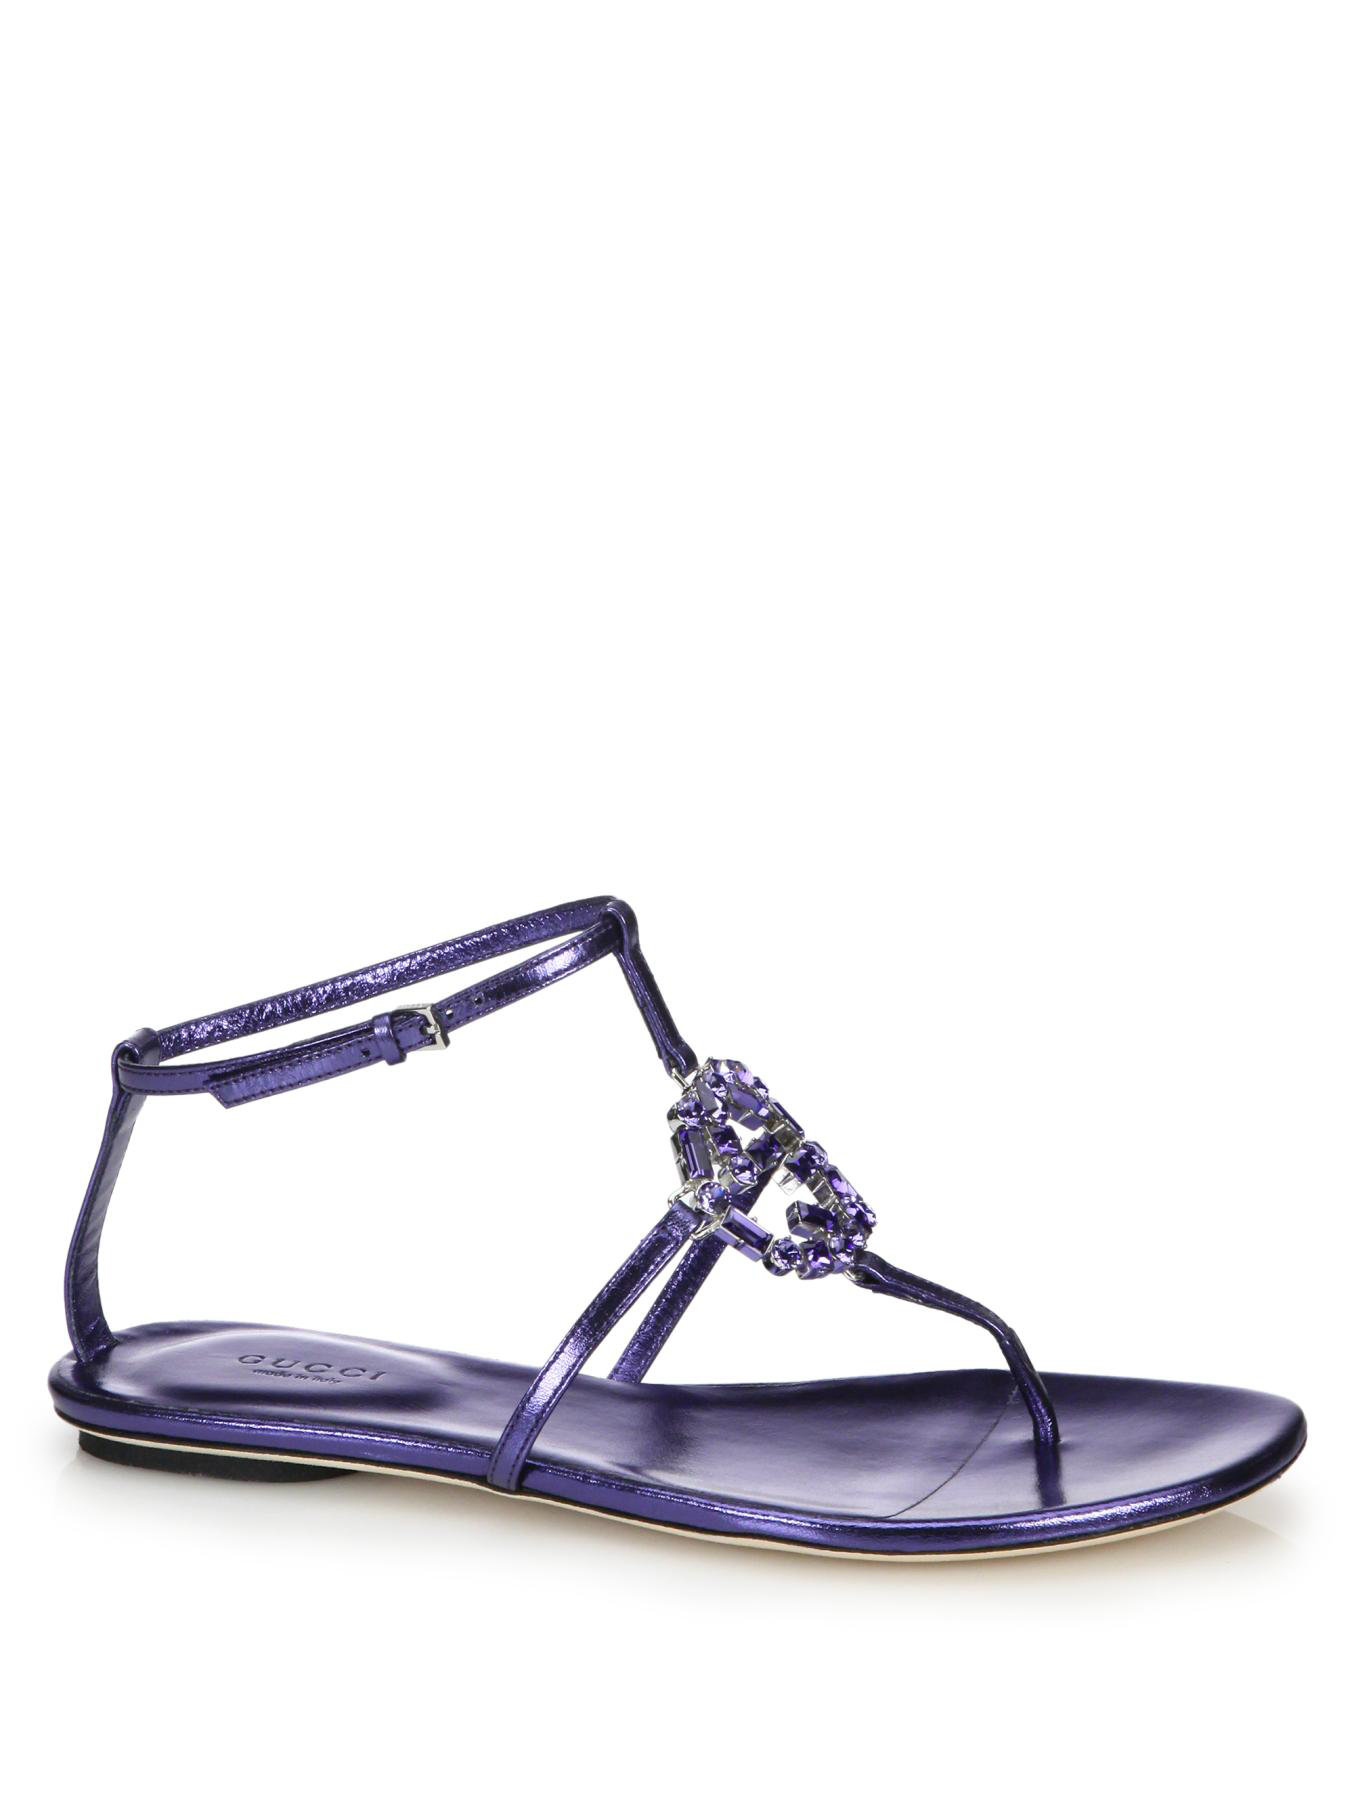 cfdf1bbdfec2 Lyst - Gucci Gg Sparkling Crystal   Leather Sandals in Blue